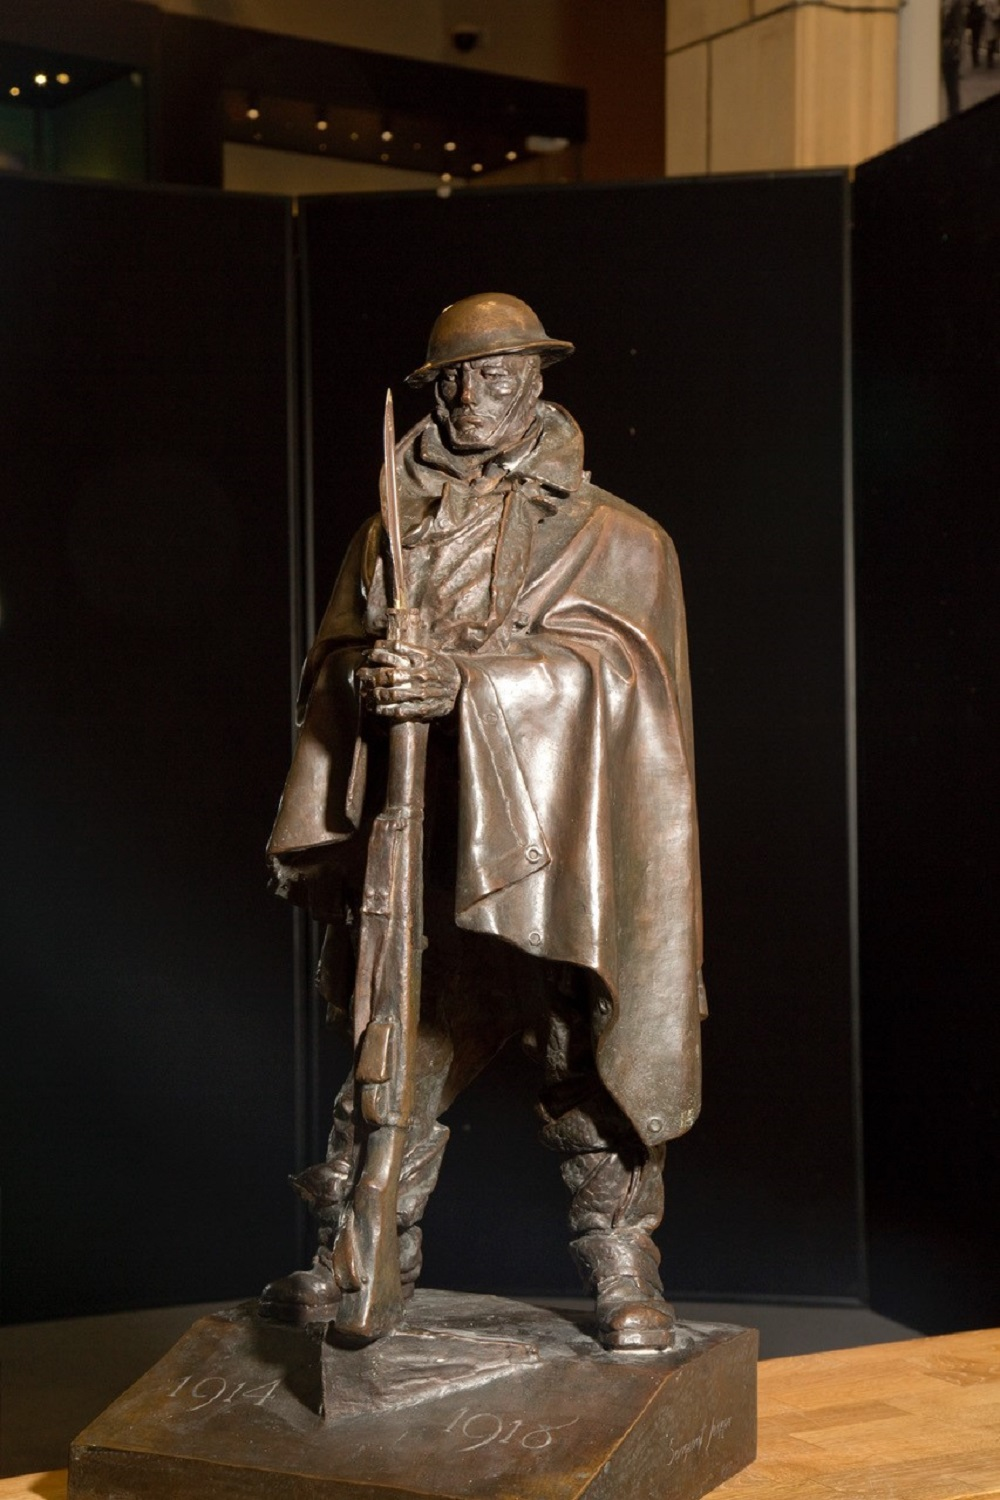 Soldier statue project could get cash boost